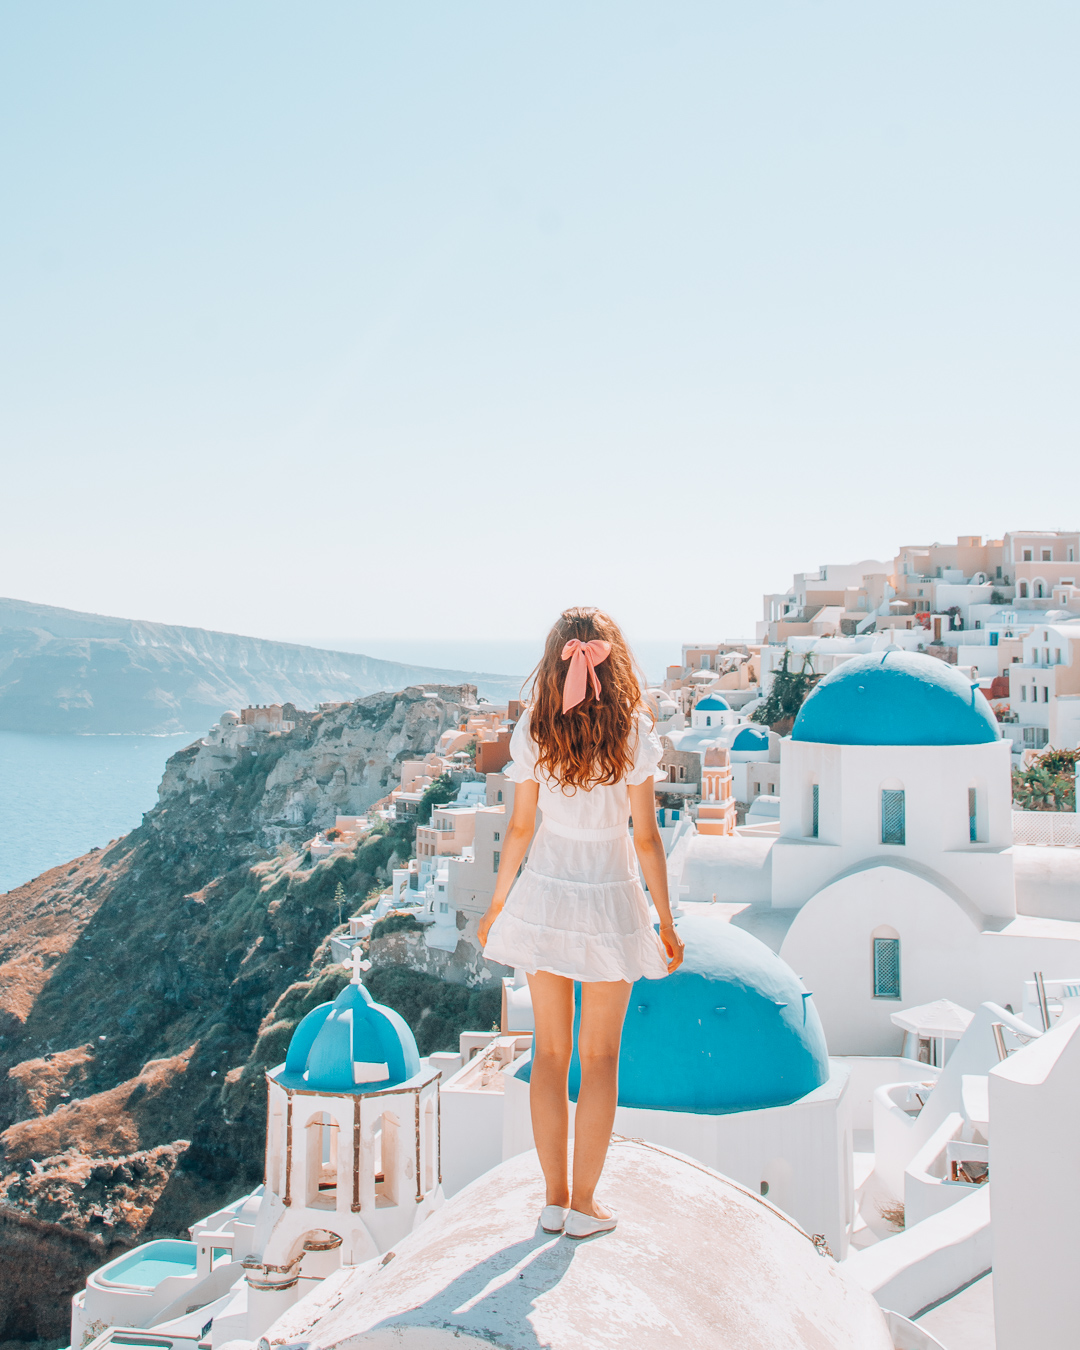 Girl standing on a rooftop in Santorini with blue domes in the background